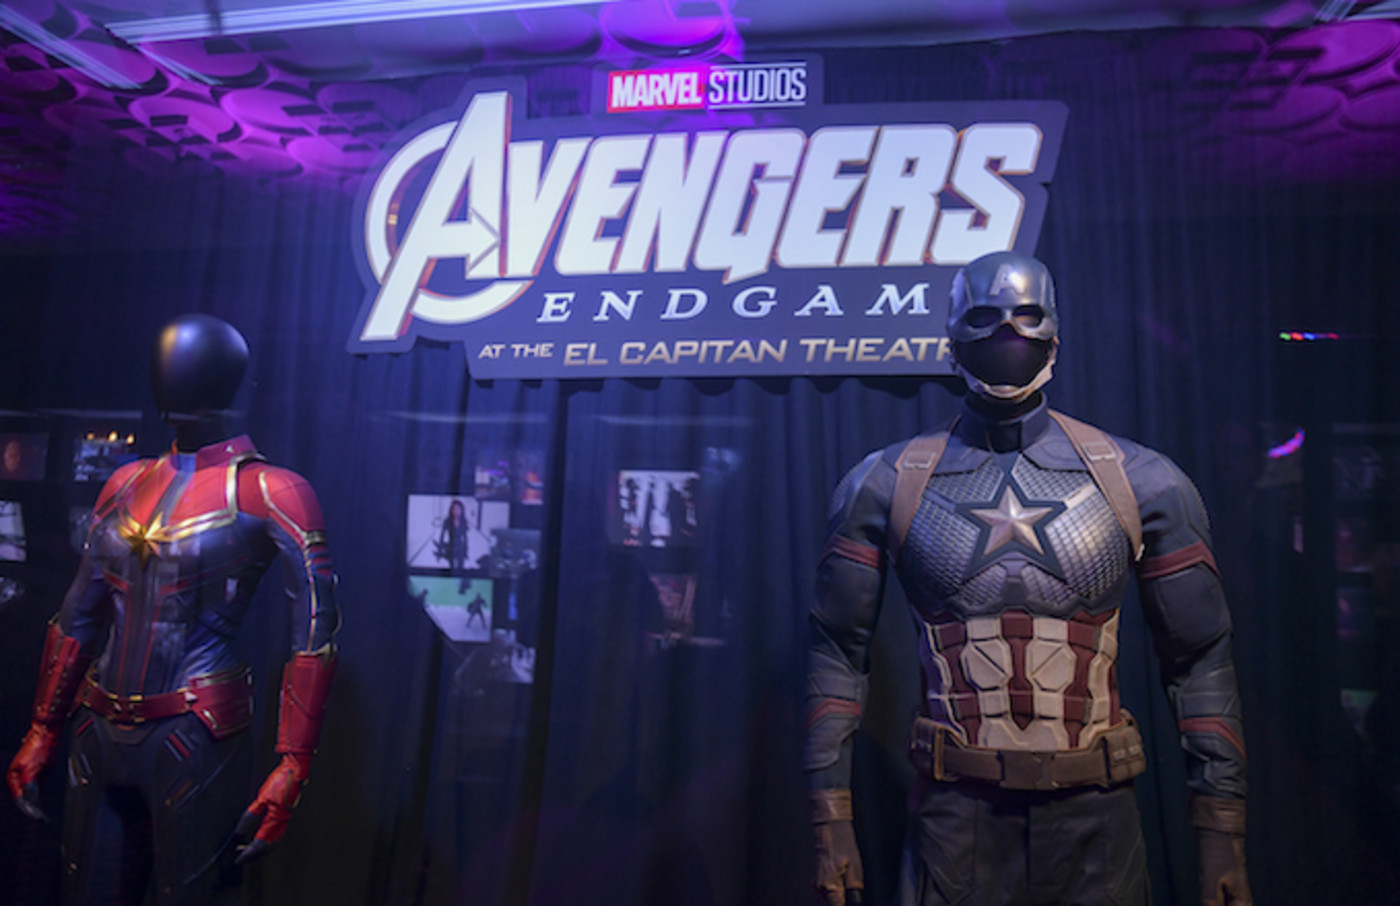 Captain Marvel's and Captain America's suits on display.